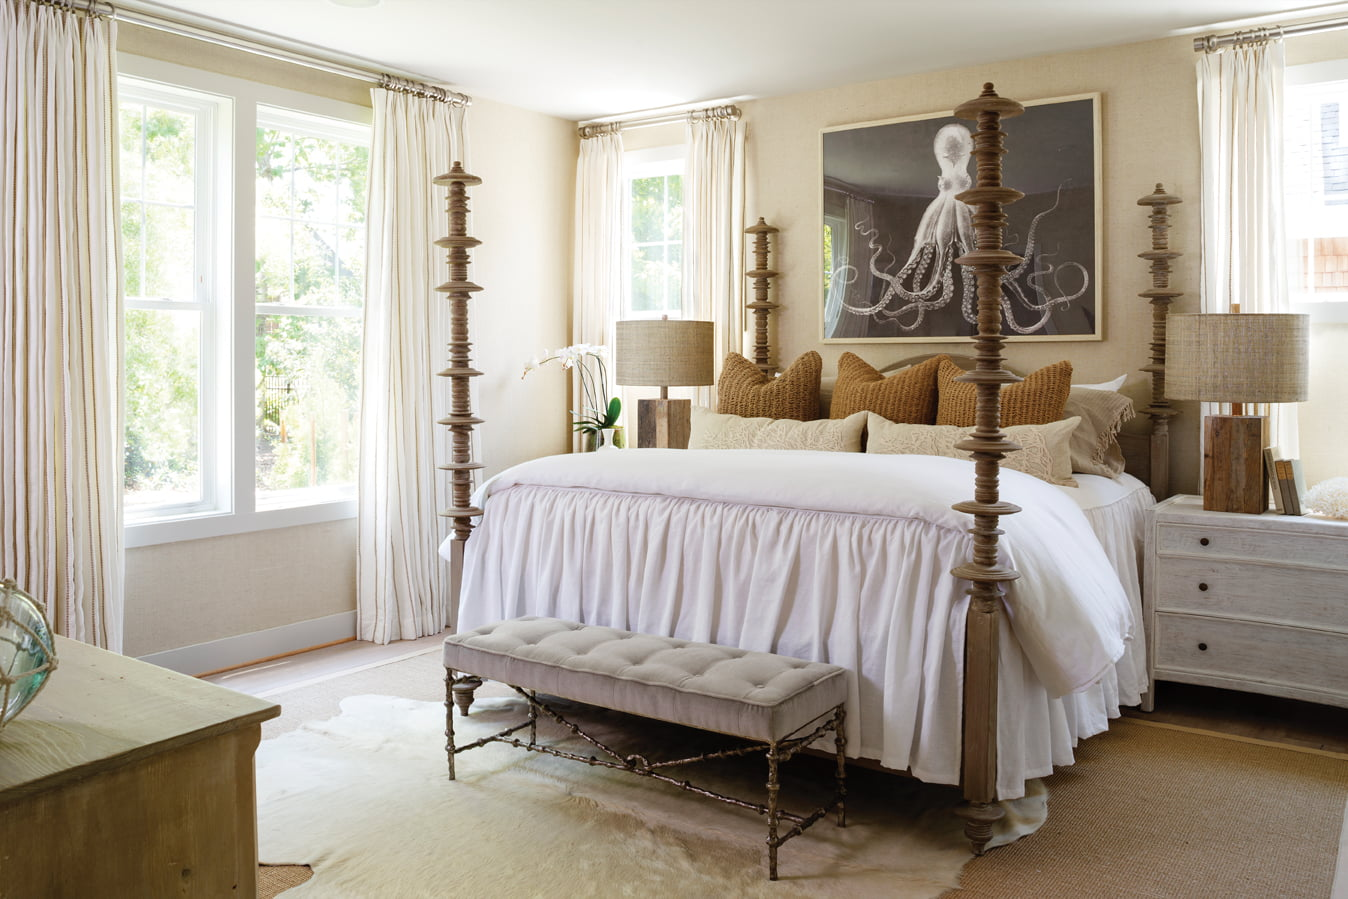 The master bedroom is papered in grasscloth from Ralph Lauren, with a bedstead from Noir Furniture and art from Natural Curiosities.